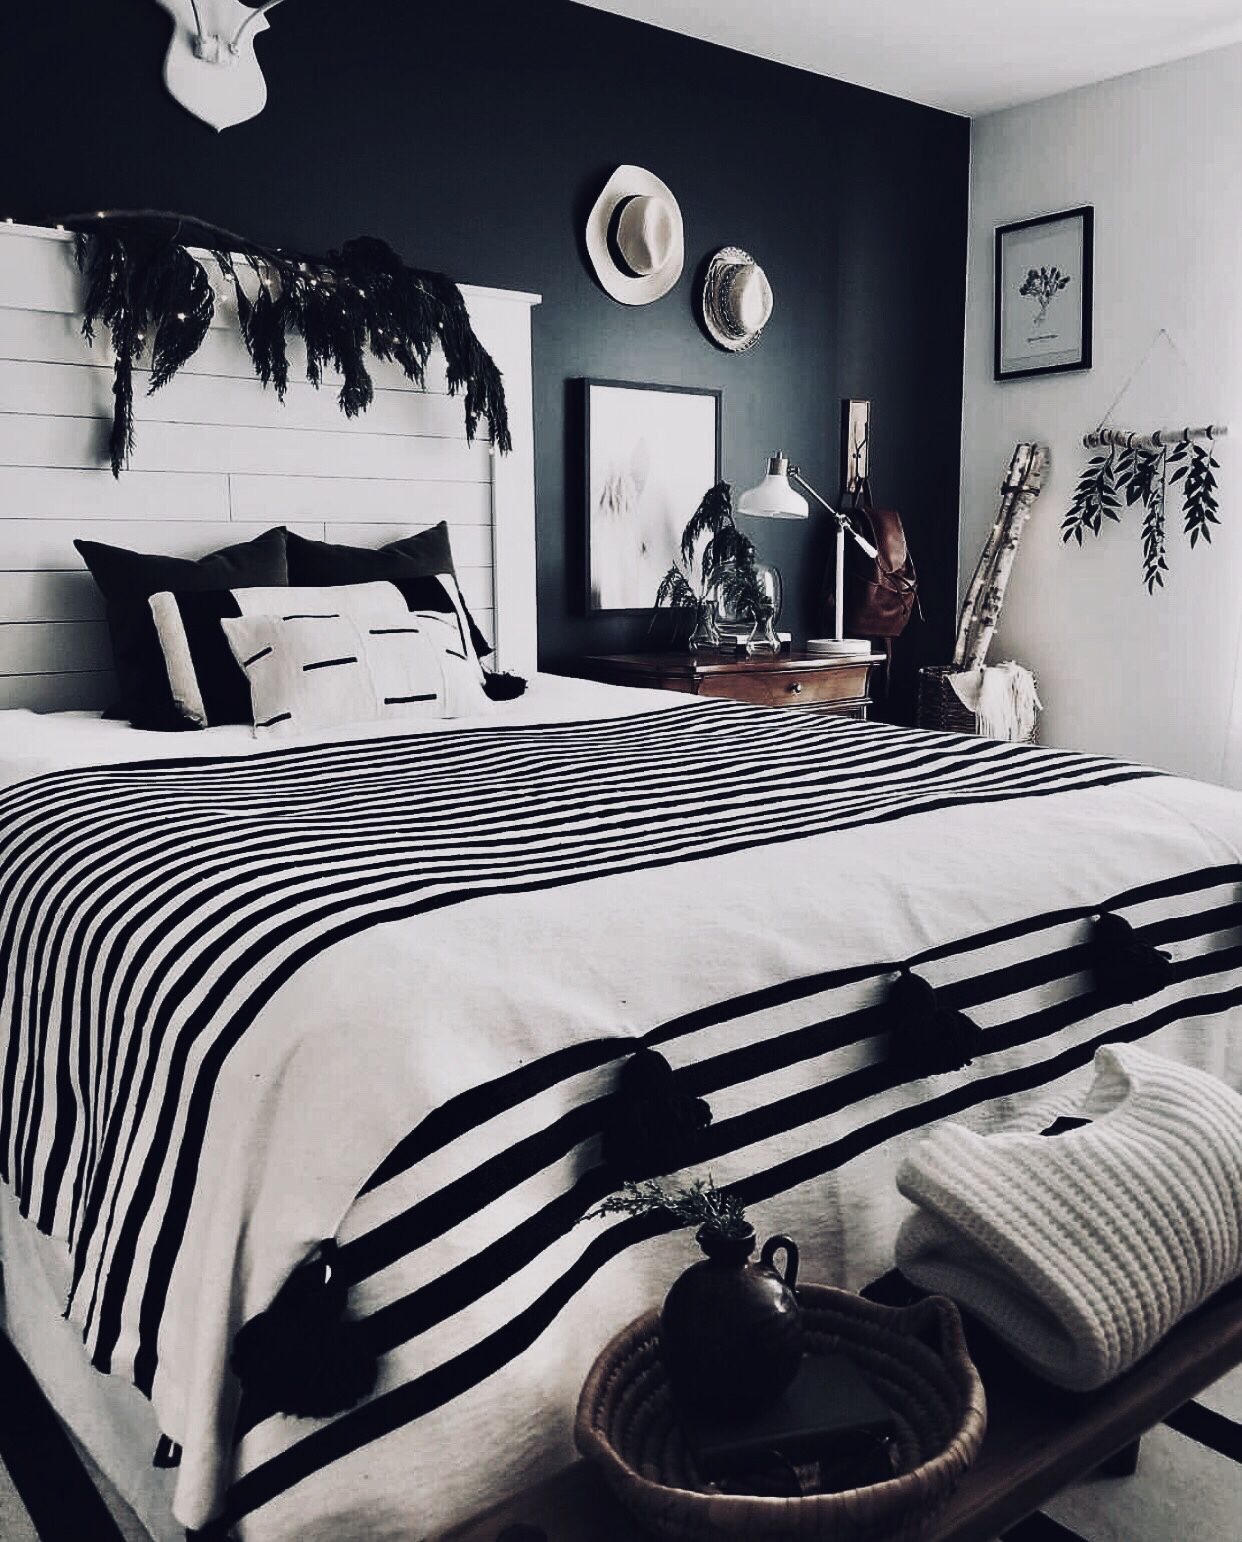 Best Contemporary Black And White Bedroom With Restrained Bohemian Touches 1 Plants 2 Tassels 400 x 300